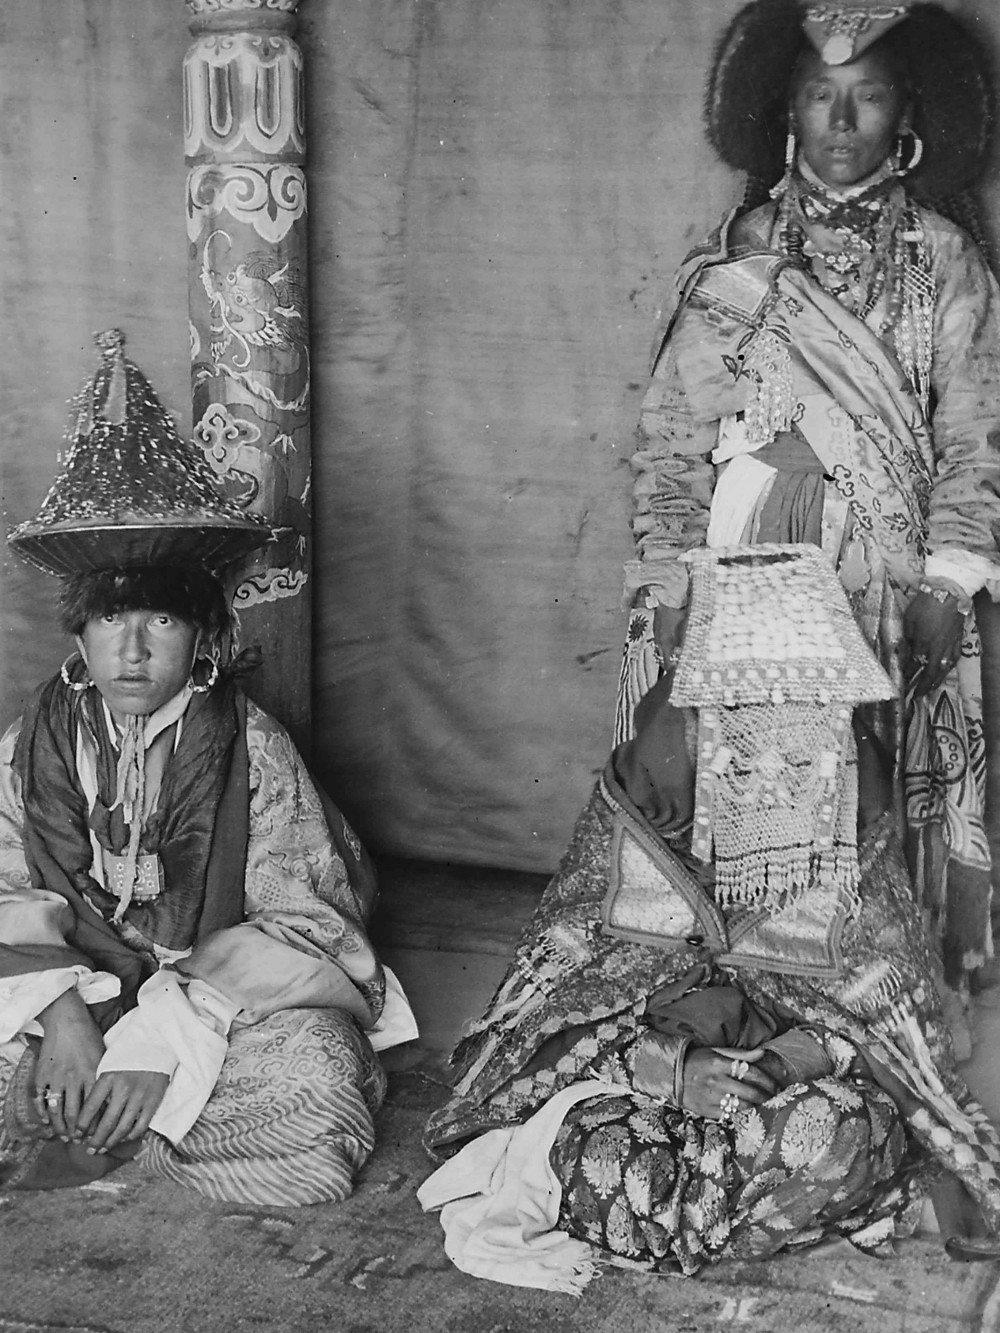 At the royal wedding in Stok, the crown prince Jigmet Dadul Namgyal and his bride queen Nyilza Wangmo are dressed in all their finery. The bride is dressed in an elaborate perag with a veil of basra pearls covering her face. Her perag is larger in the front than most typical ones worn by women in central Ladakh. She is also wearing a number of silver and gold rings. The crown prince is wearing a hat (serthop) covered with golden coloured threads, he wears large hooped earrings and around his neck hangs an amulet box (gau). (Photographer: Sebastian Schmitt, 1907–13; Courtesy: Gisela Müller)